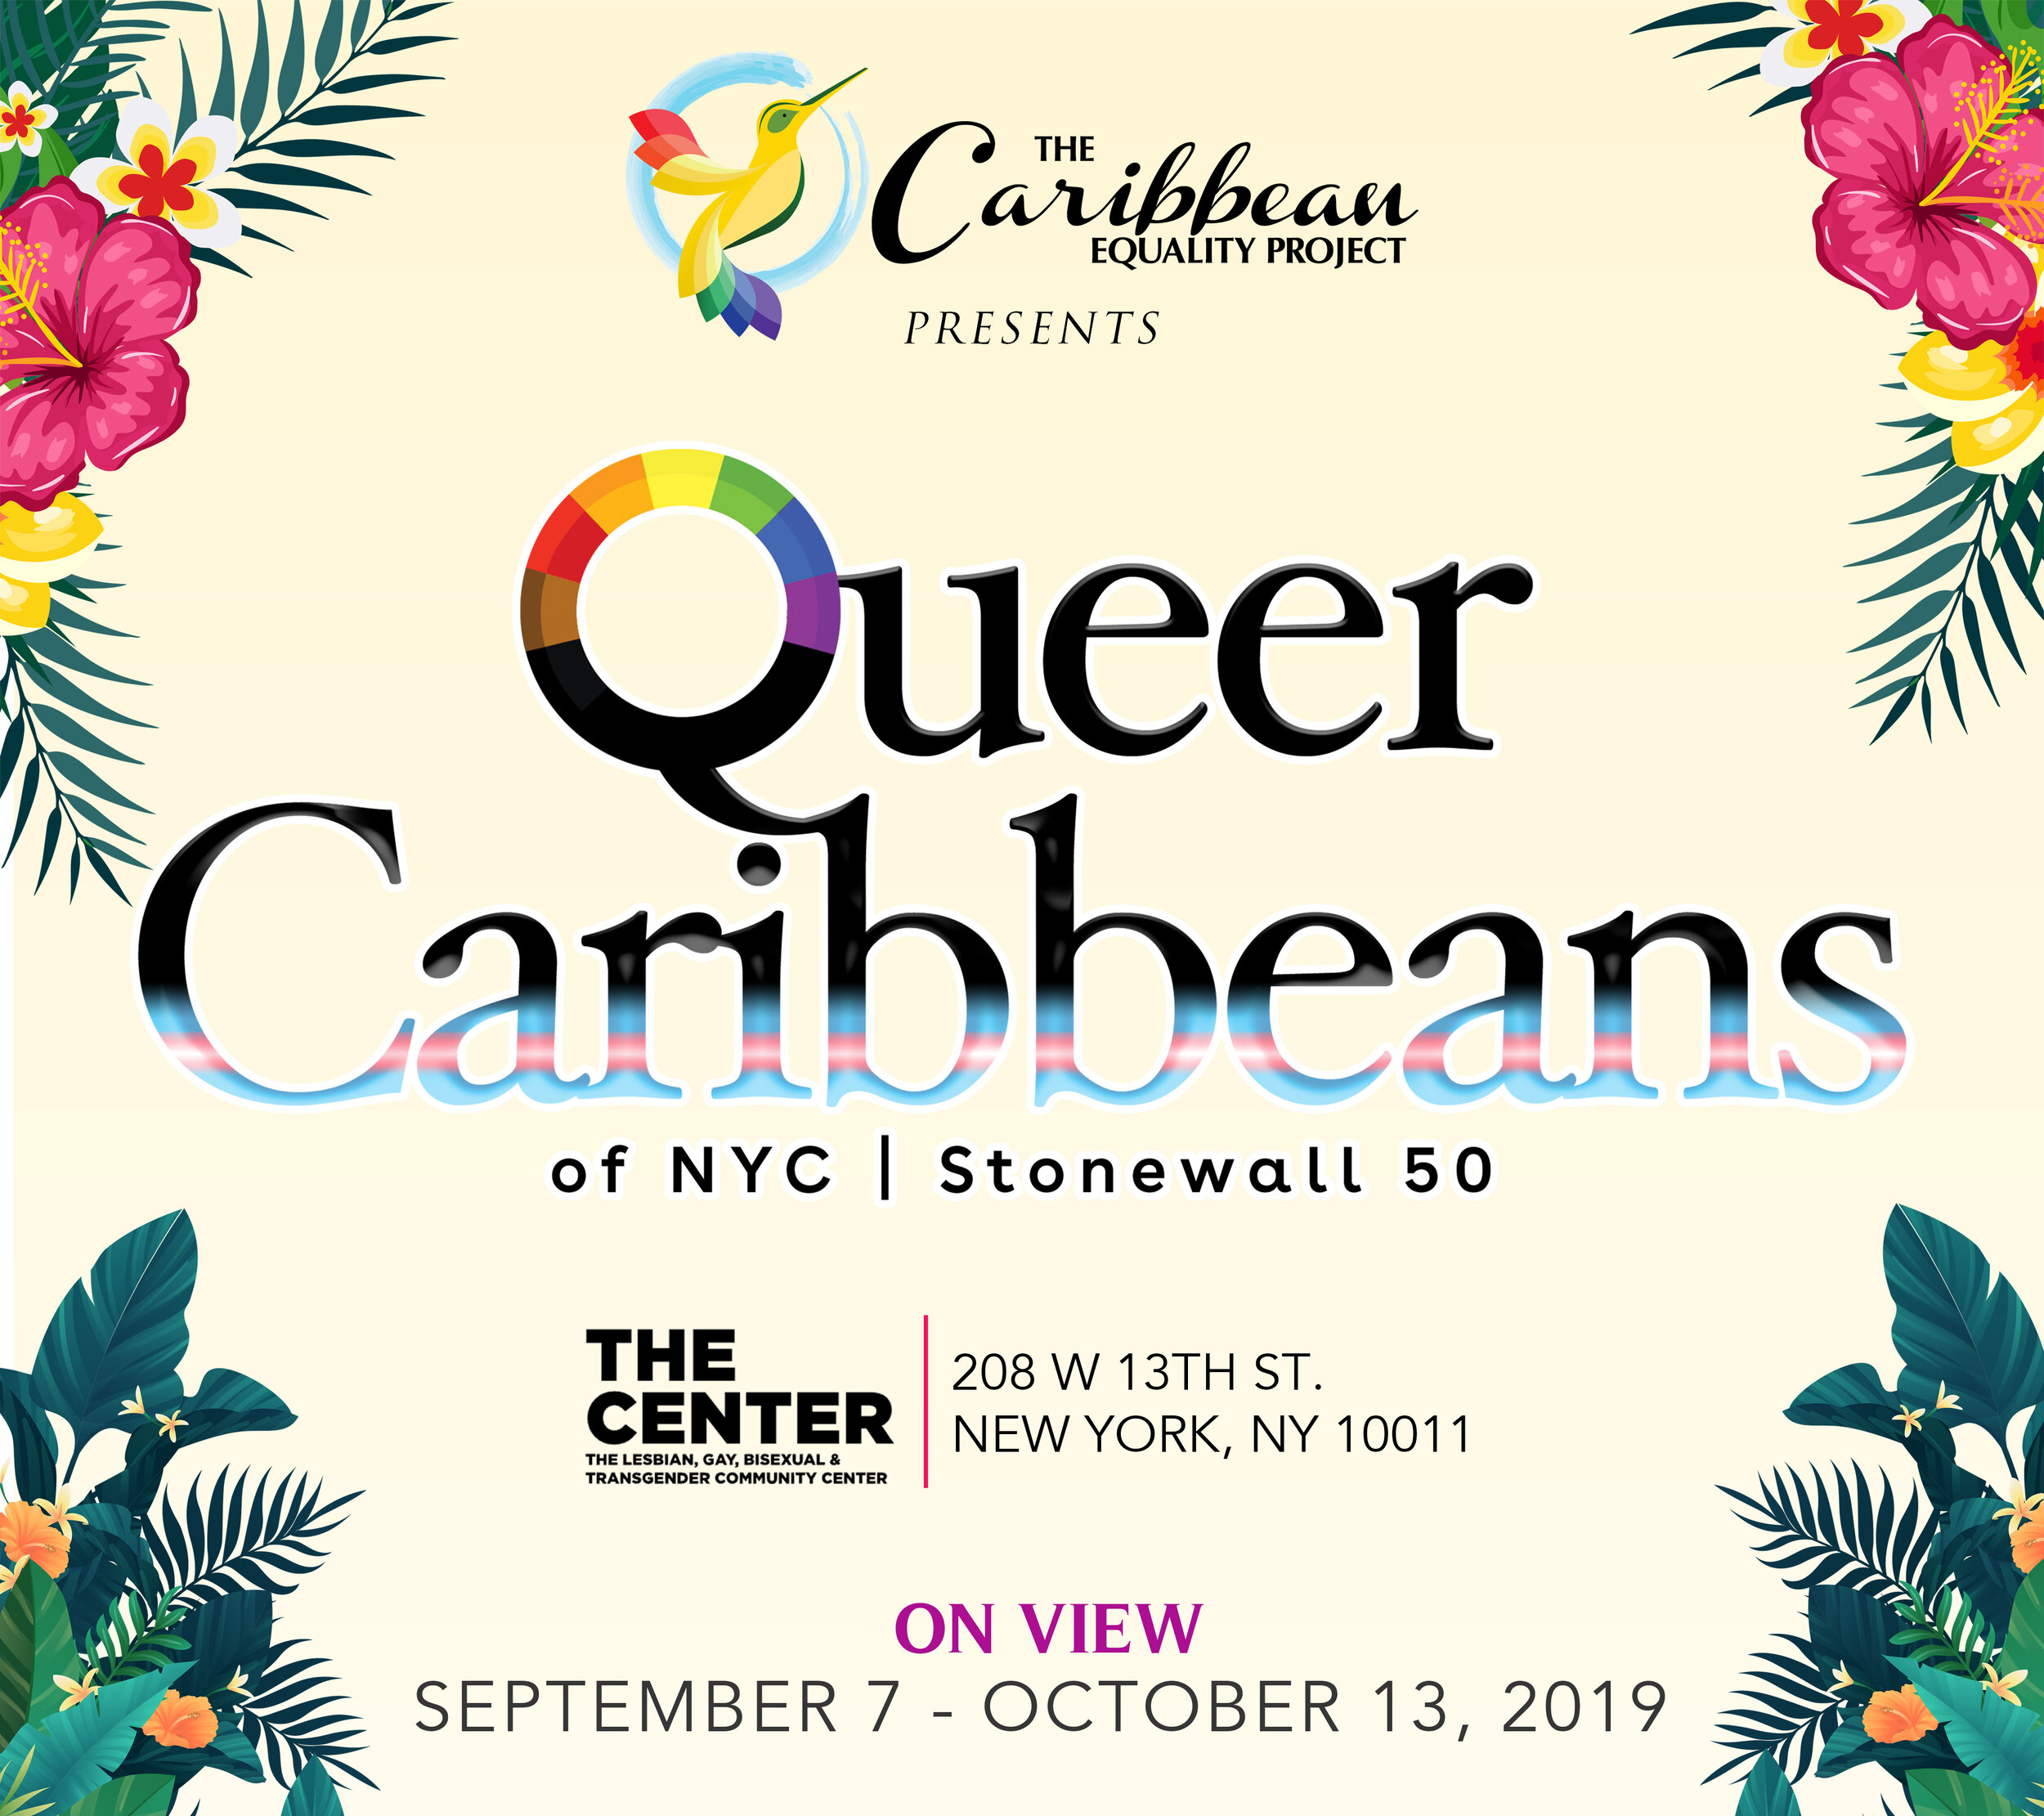 Queer Caribbeans of NYC_The Center Image.jpg